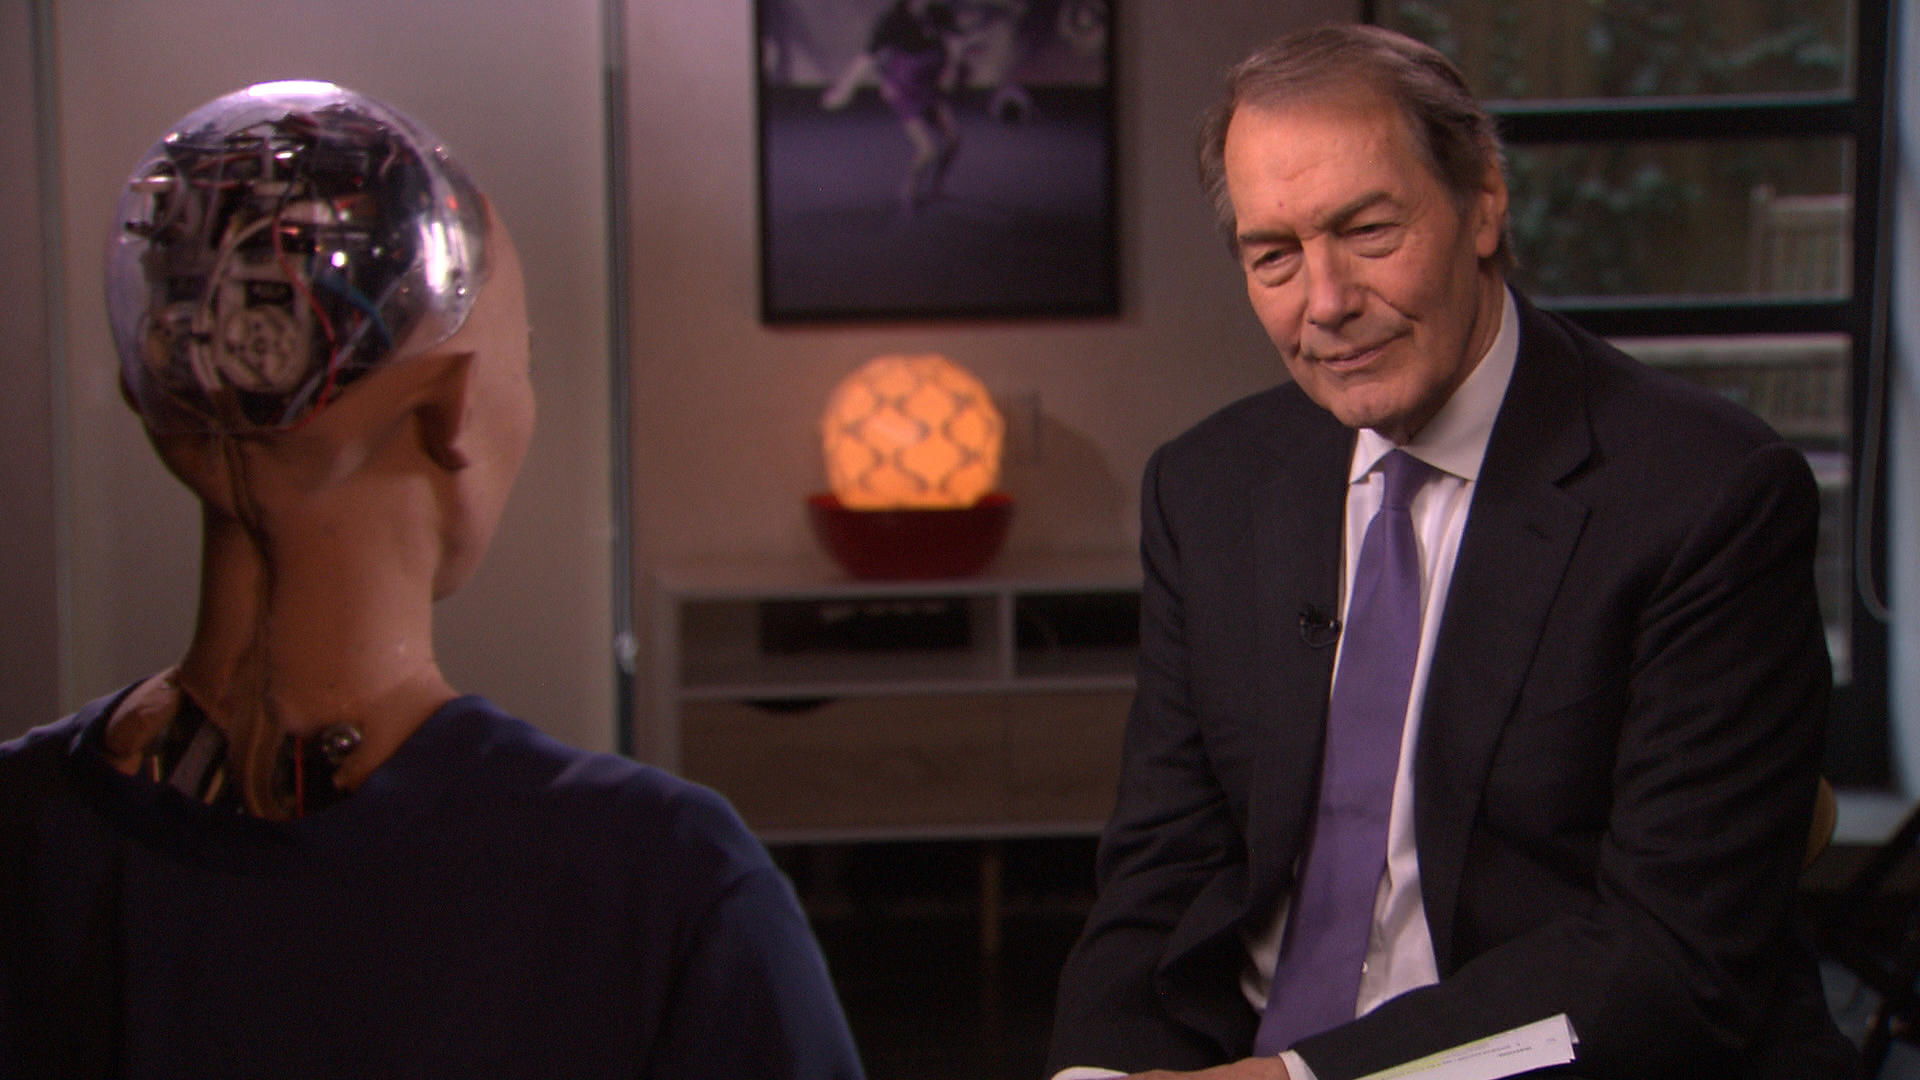 an overview of the 60 minutes show on the cbs television Cbs television studios the interview will be broadcast on 60 minutes, sunday  cbs news sunday morning at the 92nd street yin nyc.